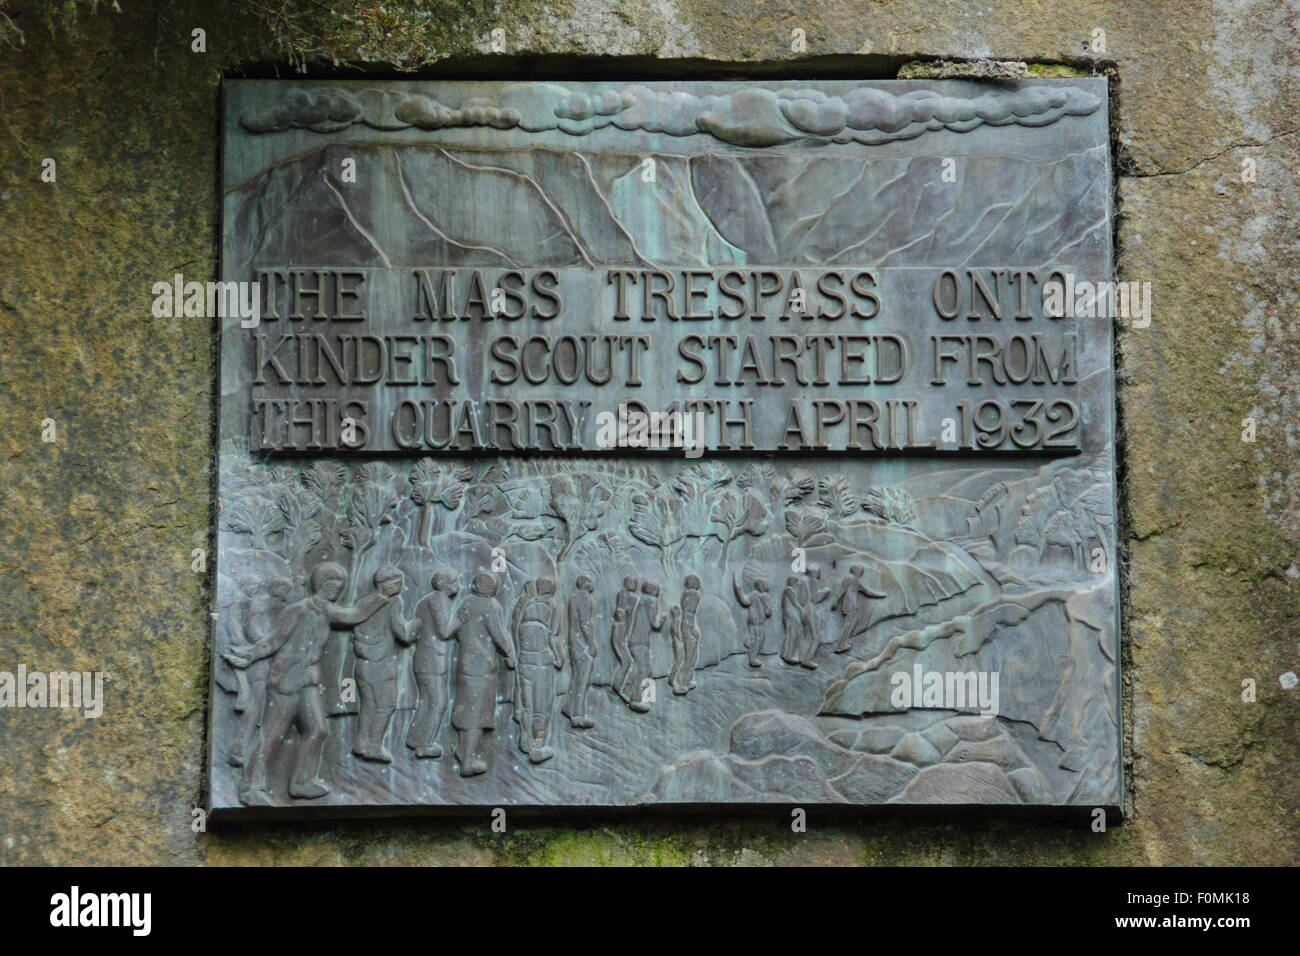 A plaque commemorating the mass trespass of kinder scout by walkers, Bowden Bridge quarry car park, near Hayfield, - Stock Image